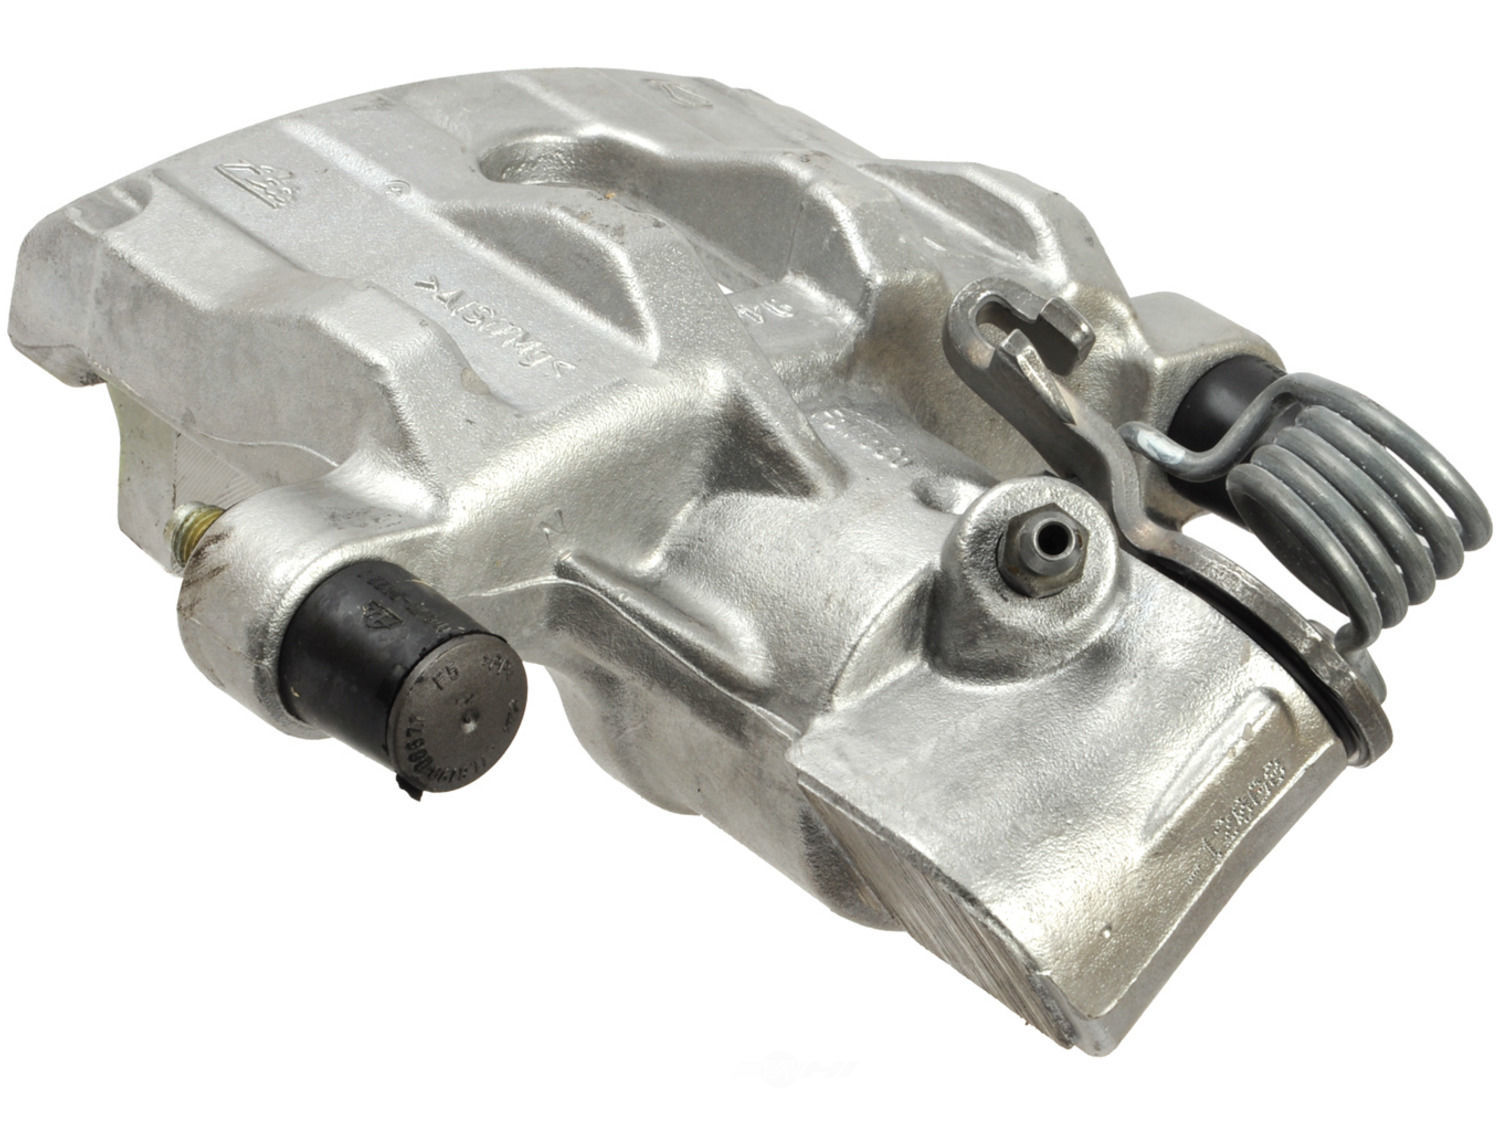 CARDONE REMAN - Unloaded Caliper - A1C 19-6284